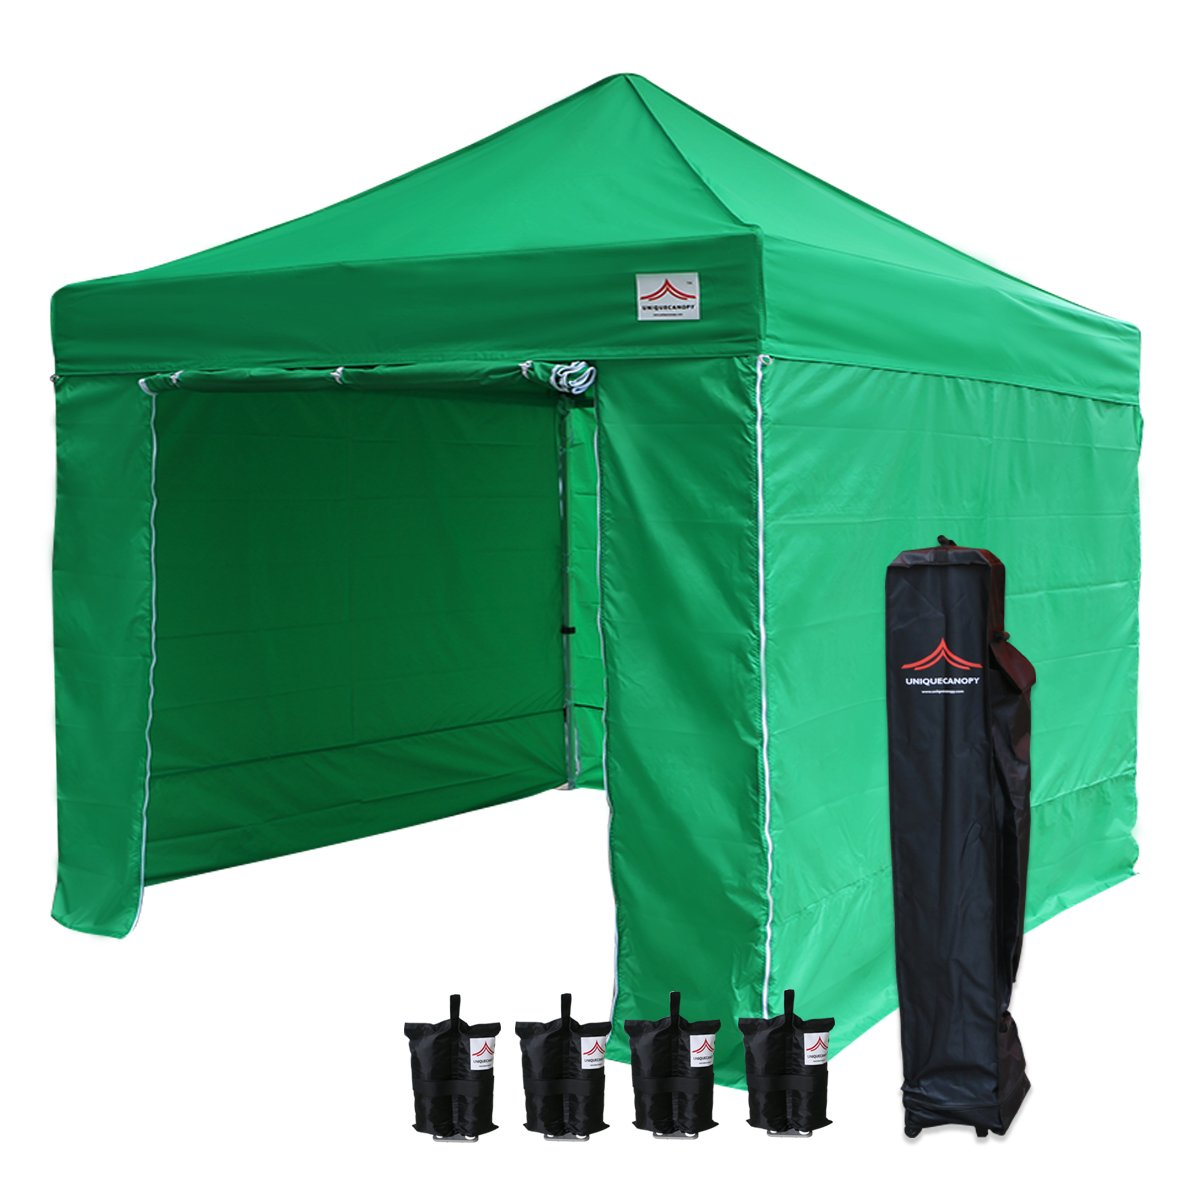 UNIQUECANOPY 10x10 Ez Pop up Canopy Tents for Parties Outdoor Portable Instant Folded Commercial Popup Shelter, with 4 Zippered Side Walls and Wheeled Carrying Bag Bonus 4 Sandbags Green